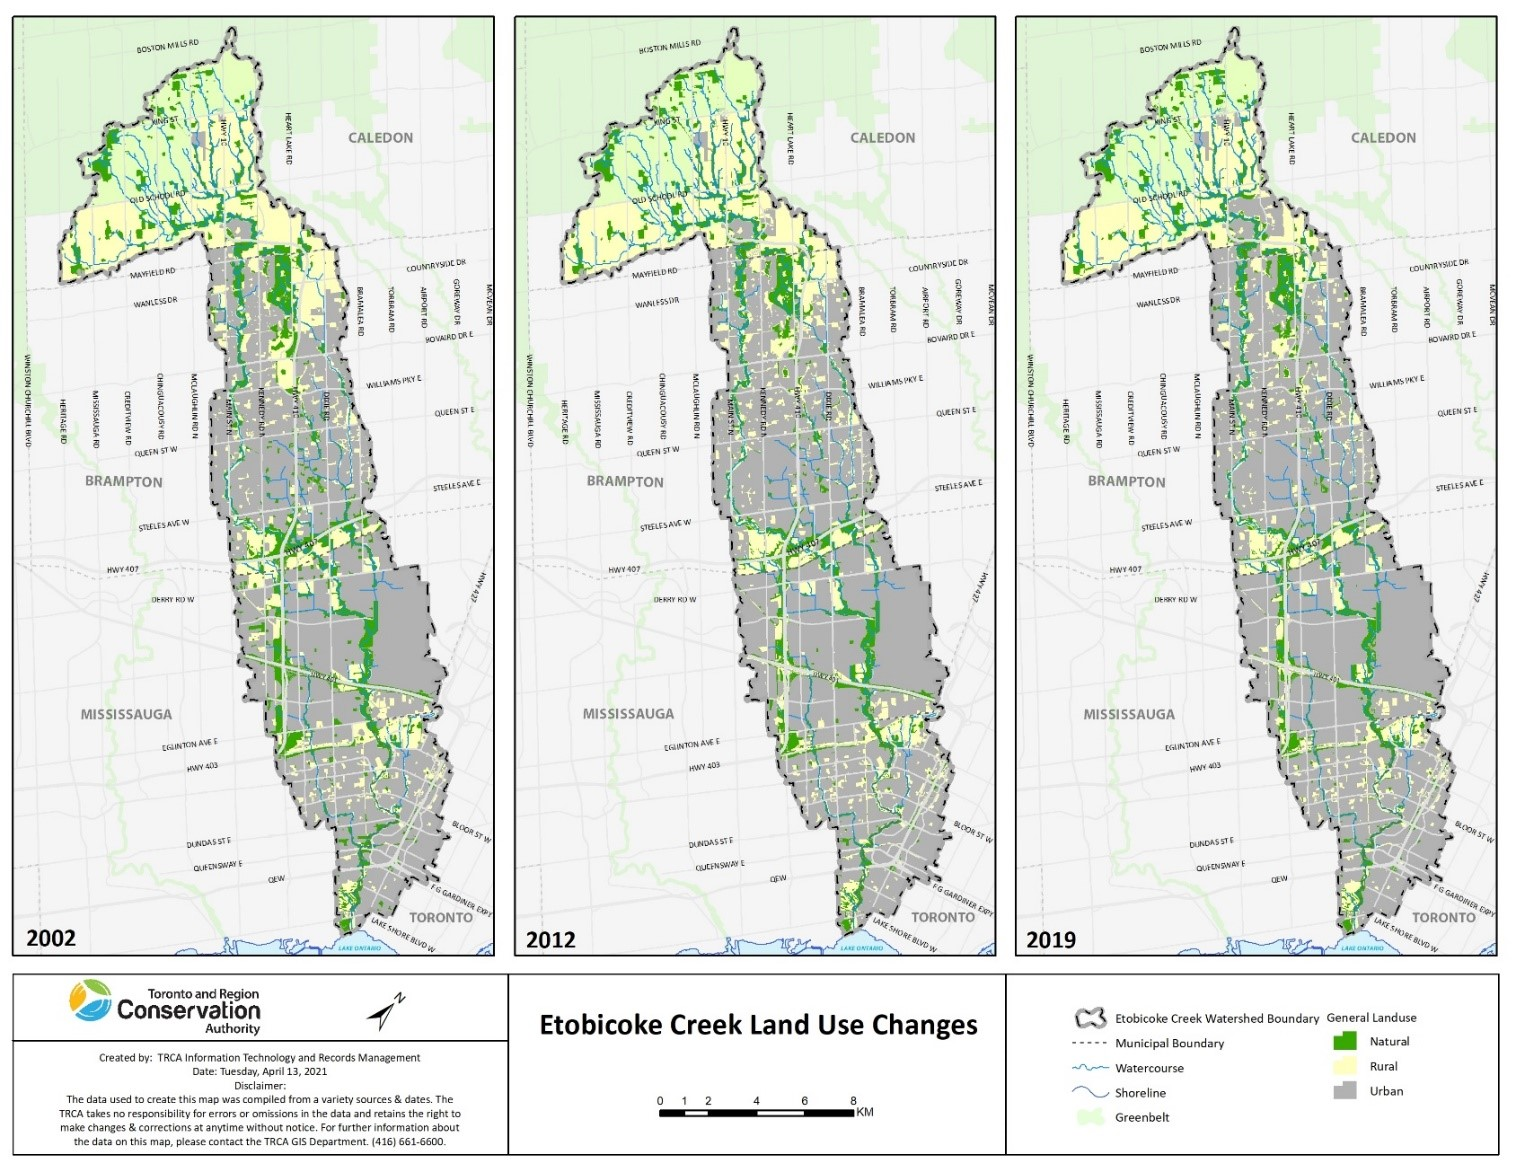 land use map shows the increasing urbanization of the Etobicoke Creek watershed from 2012 to 2019